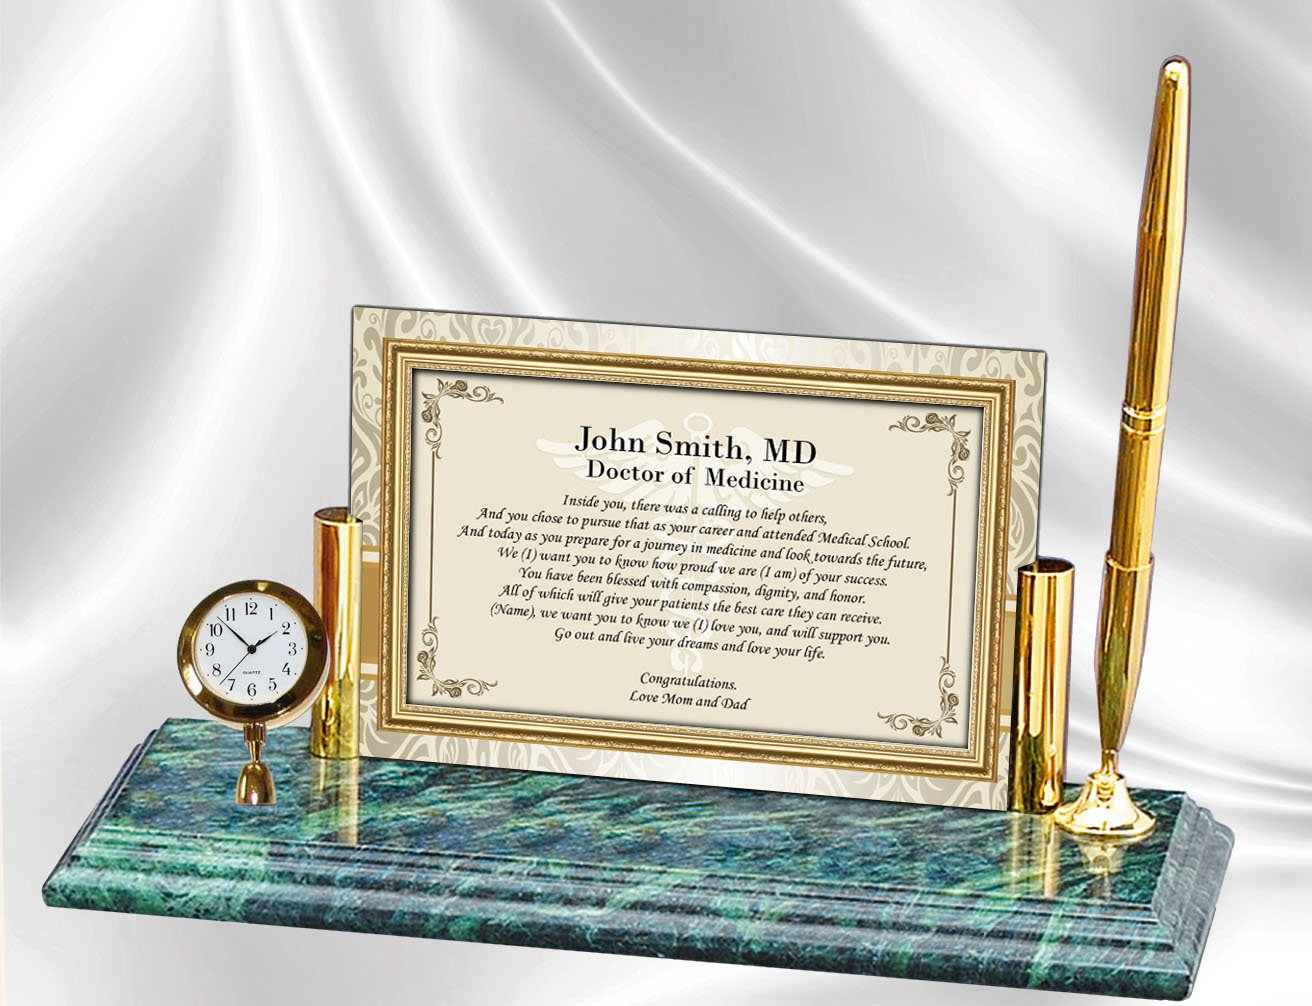 Personalized Poetry Clock Gift Doctor Physician or Medical School Graduation Graduate Poem Gifts - Mini Desk Table Clock Genuine Marble Base Brass Pen Set School Congratulation Present